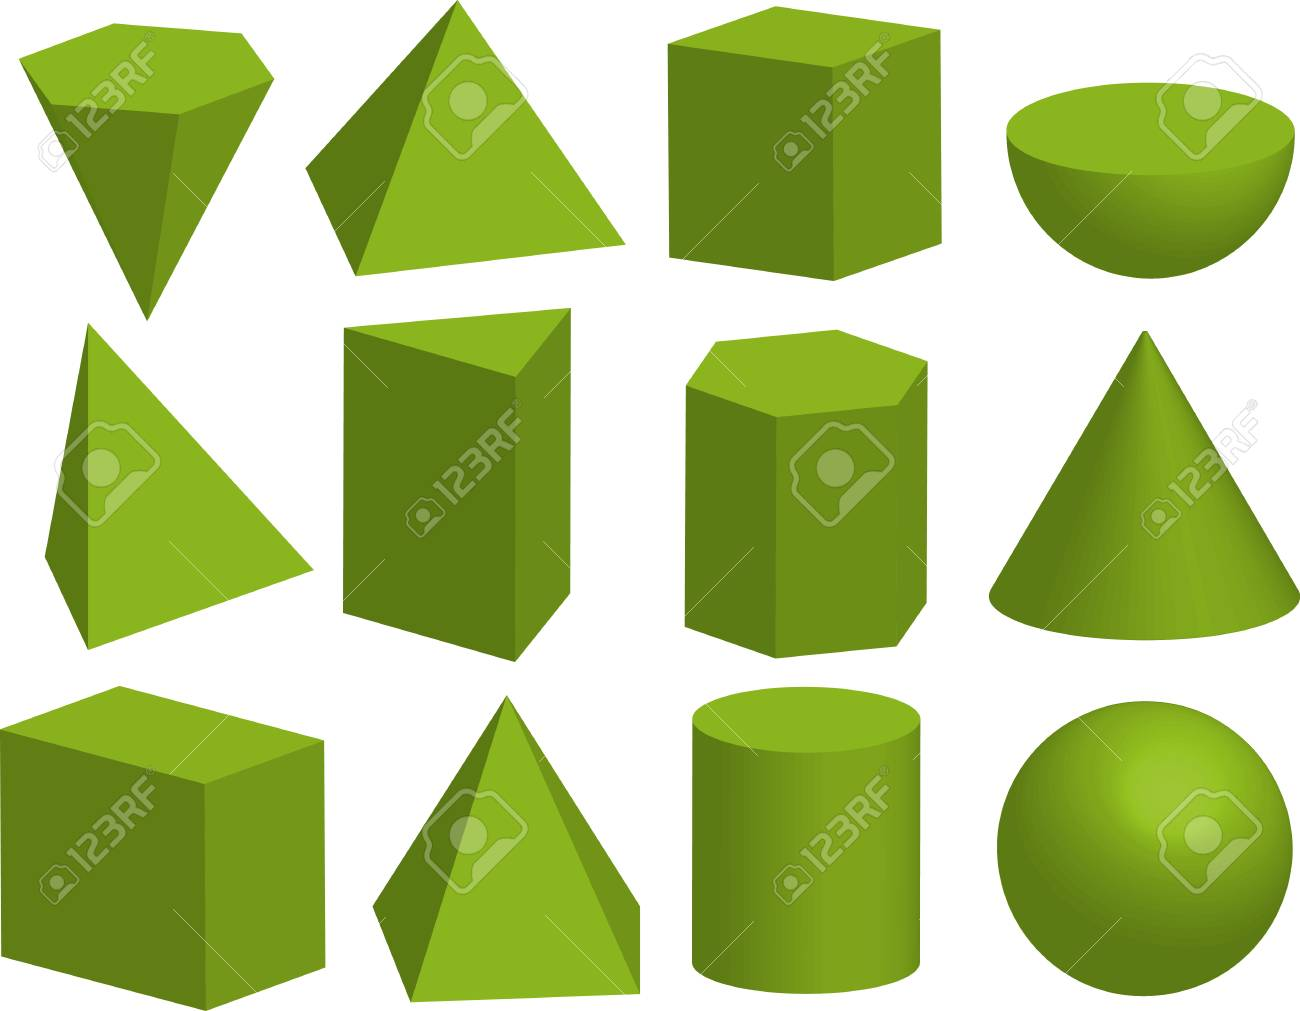 Basic 3d geometric shapes. Geometric solids. Pyramid, prism, polyhedron, cube, cylinder, cone, sphere, hemisphere. Isolated on white background. - 90381352